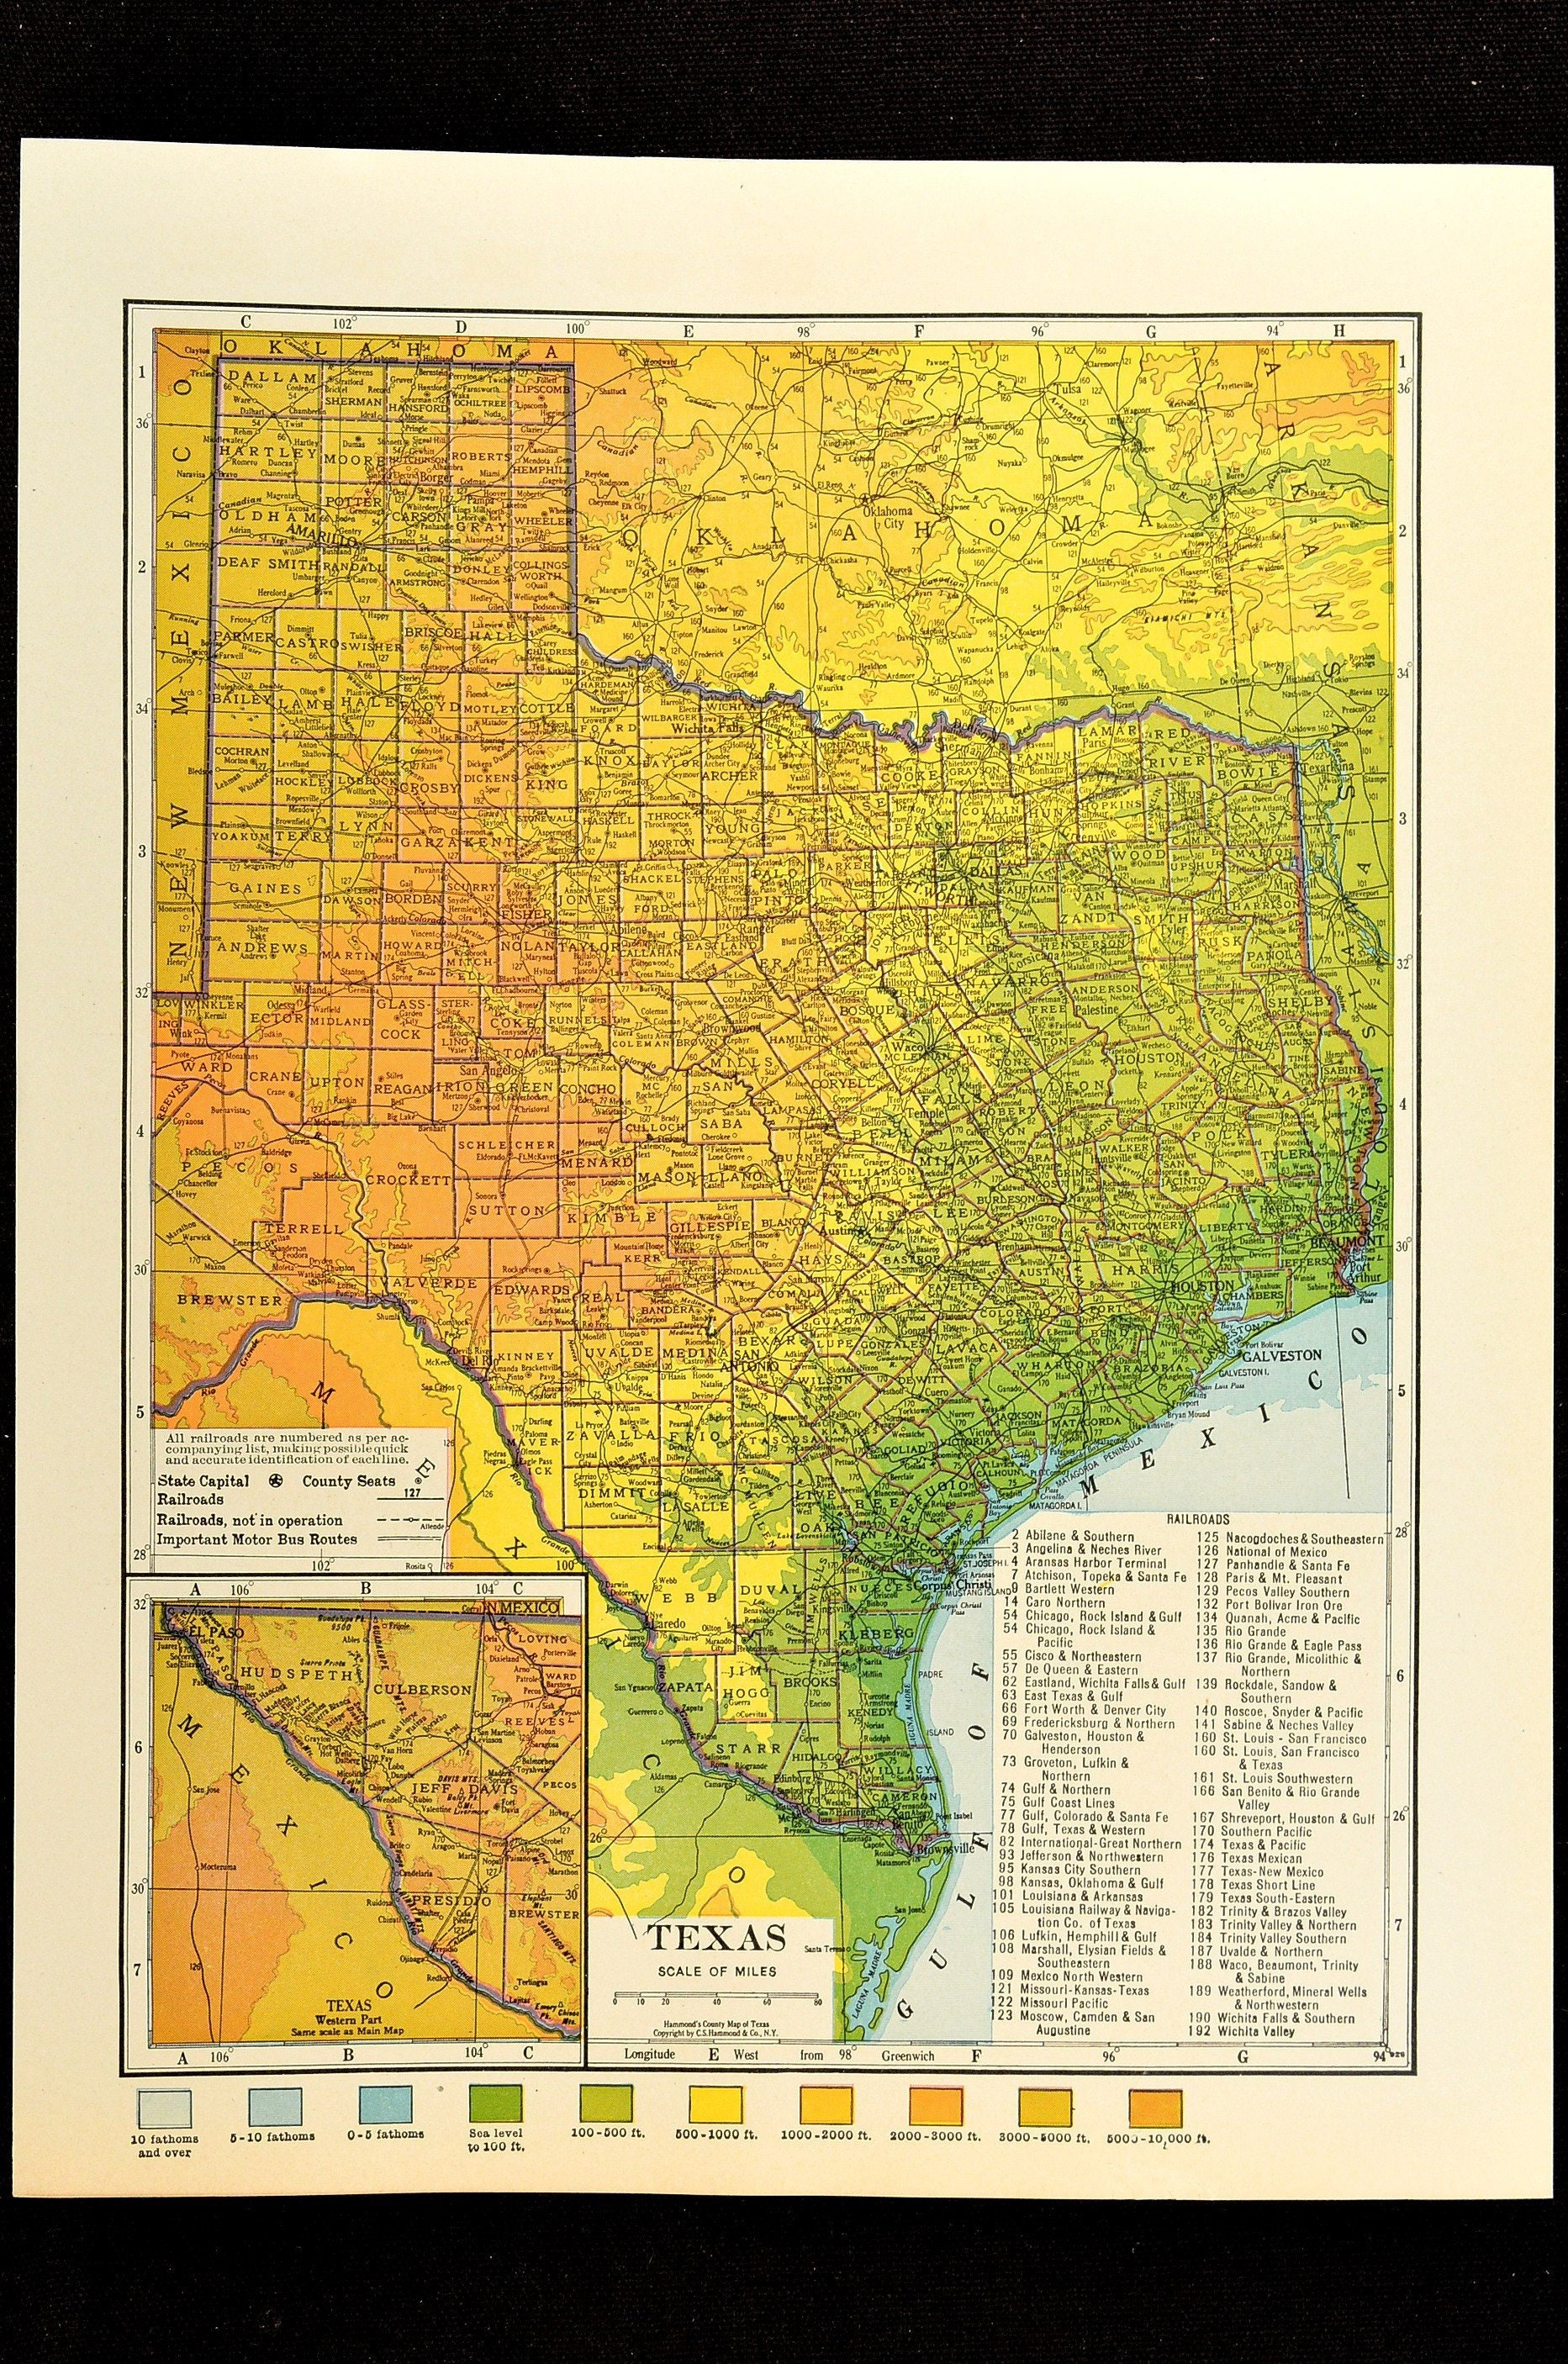 Map Of Texas Please.Texas Map Of Texas Topographic Map Wall Decor Art Colorful Colored Topo Wedding Gift Idea For Him Print